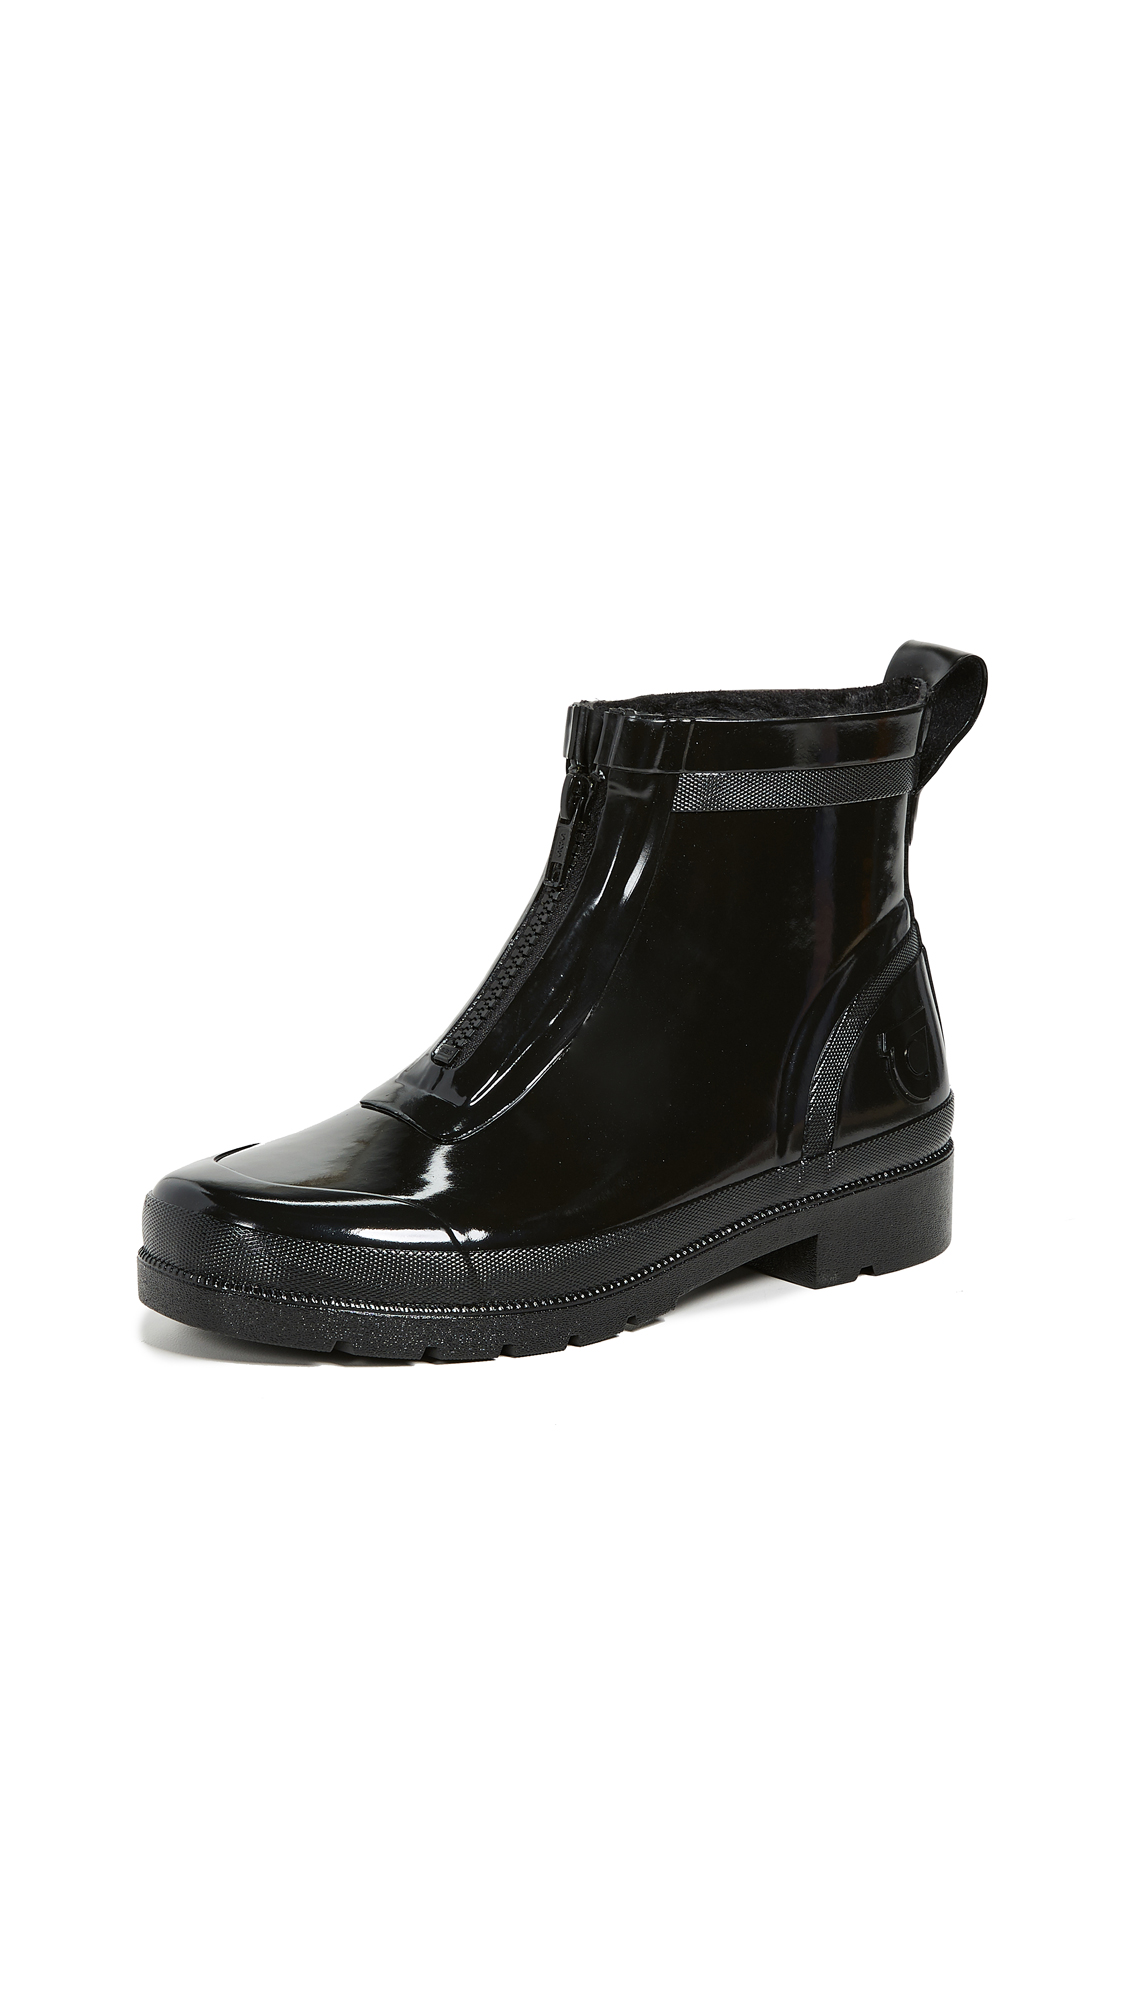 Tretorn Lina Zip Rain Boots In Black